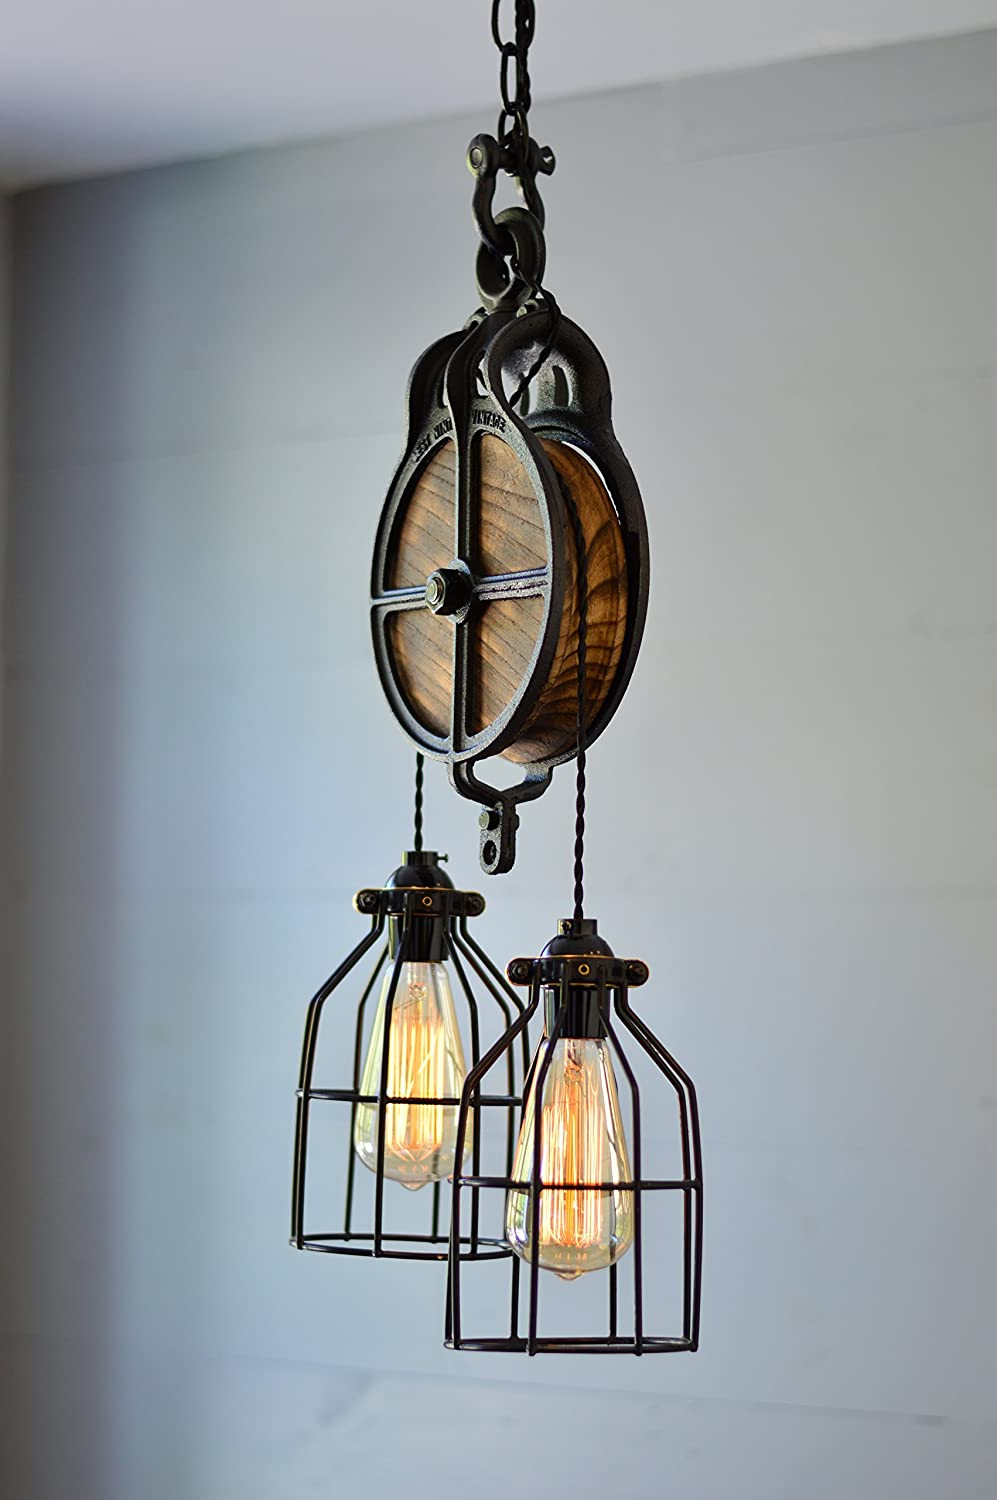 West Ninth Vintage Wood and Iron Barn Pulley Light Black